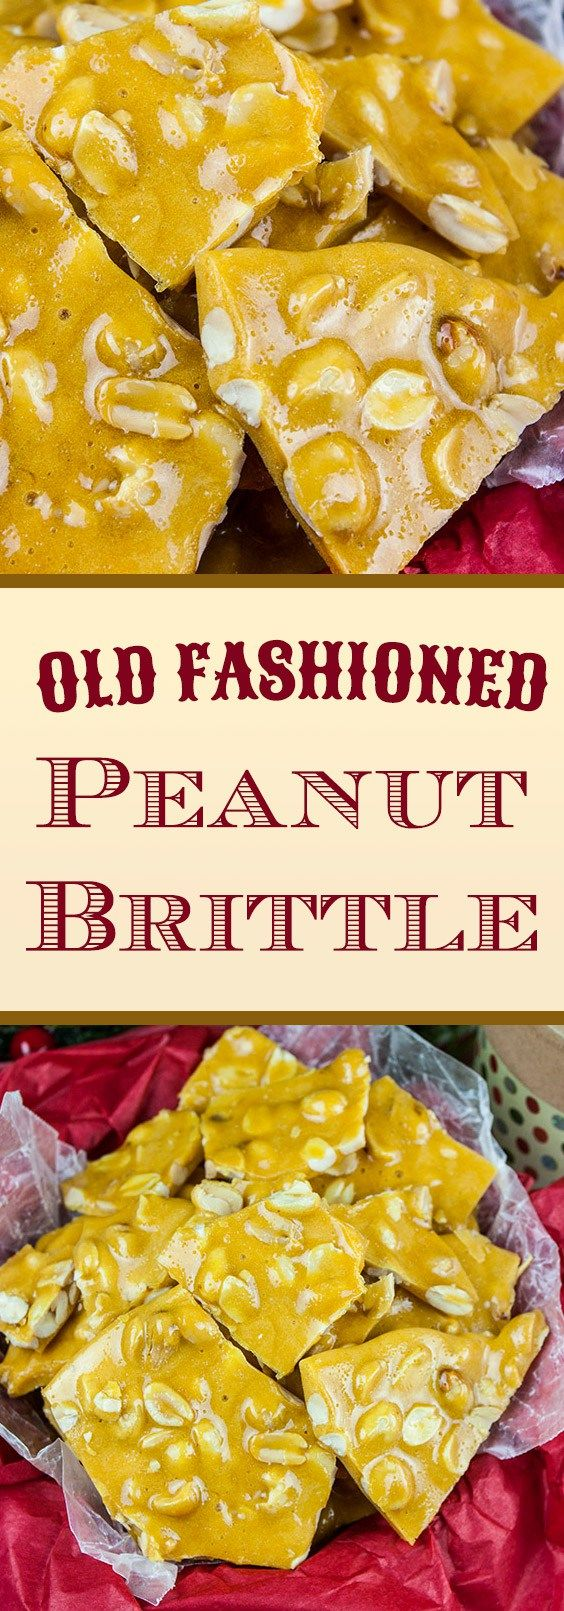 Old-Fashioned Peanut Brittle - A deliciously sweet, crunchy candy loaded with salty peanuts that's sure to please. Great for Christmas gifts, holiday candy trays, or all year long sweet.